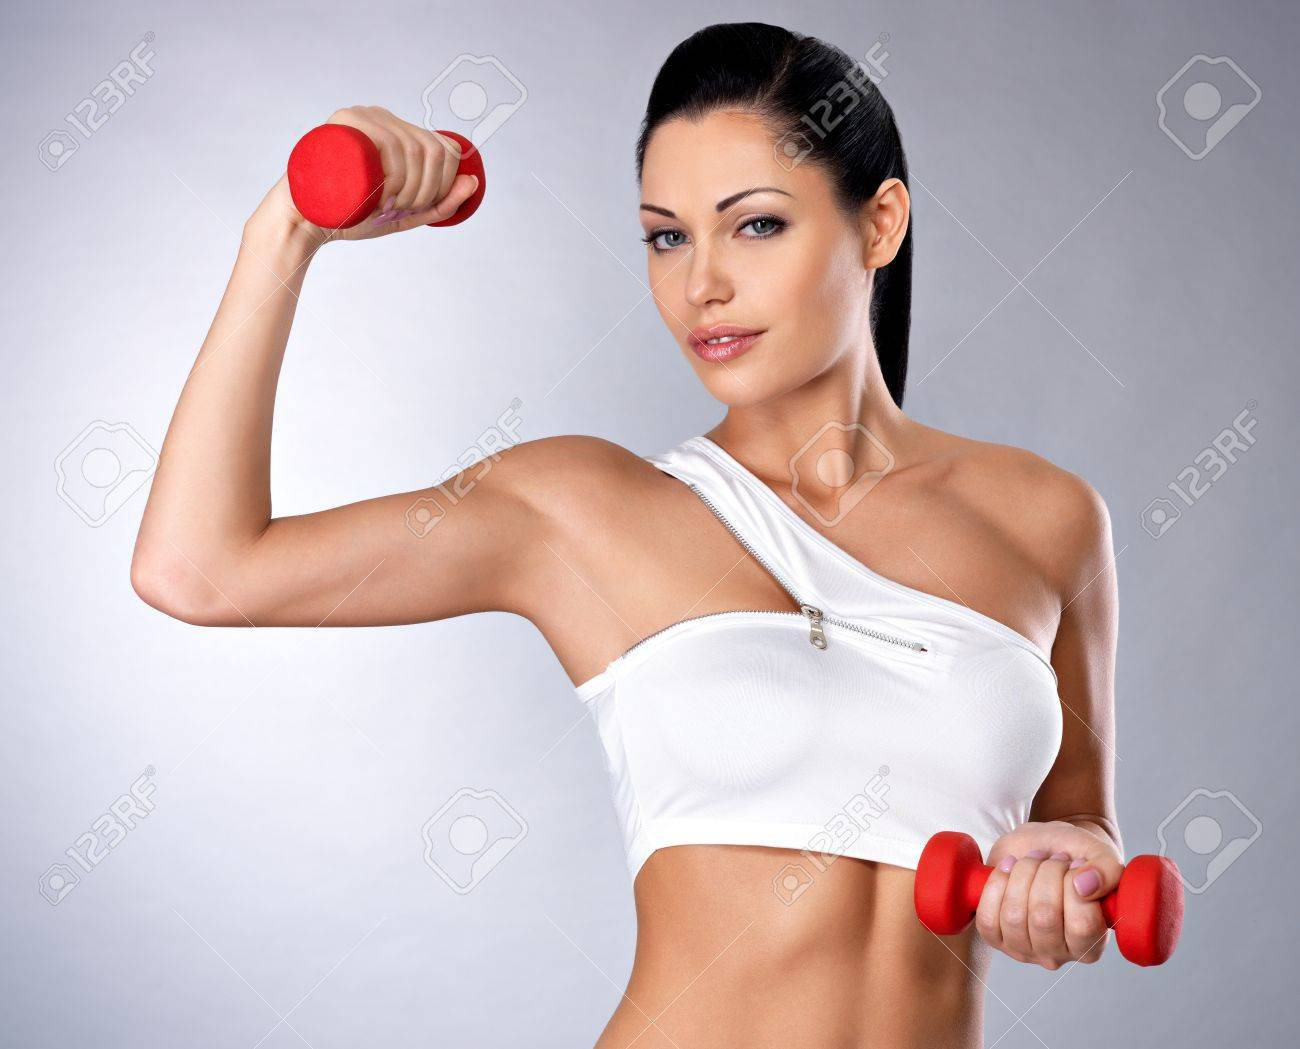 Portrait of beautiful young woman with dumbbells -  grey studio background. Healthy lifestyle concept. Stock Photo - 16300972